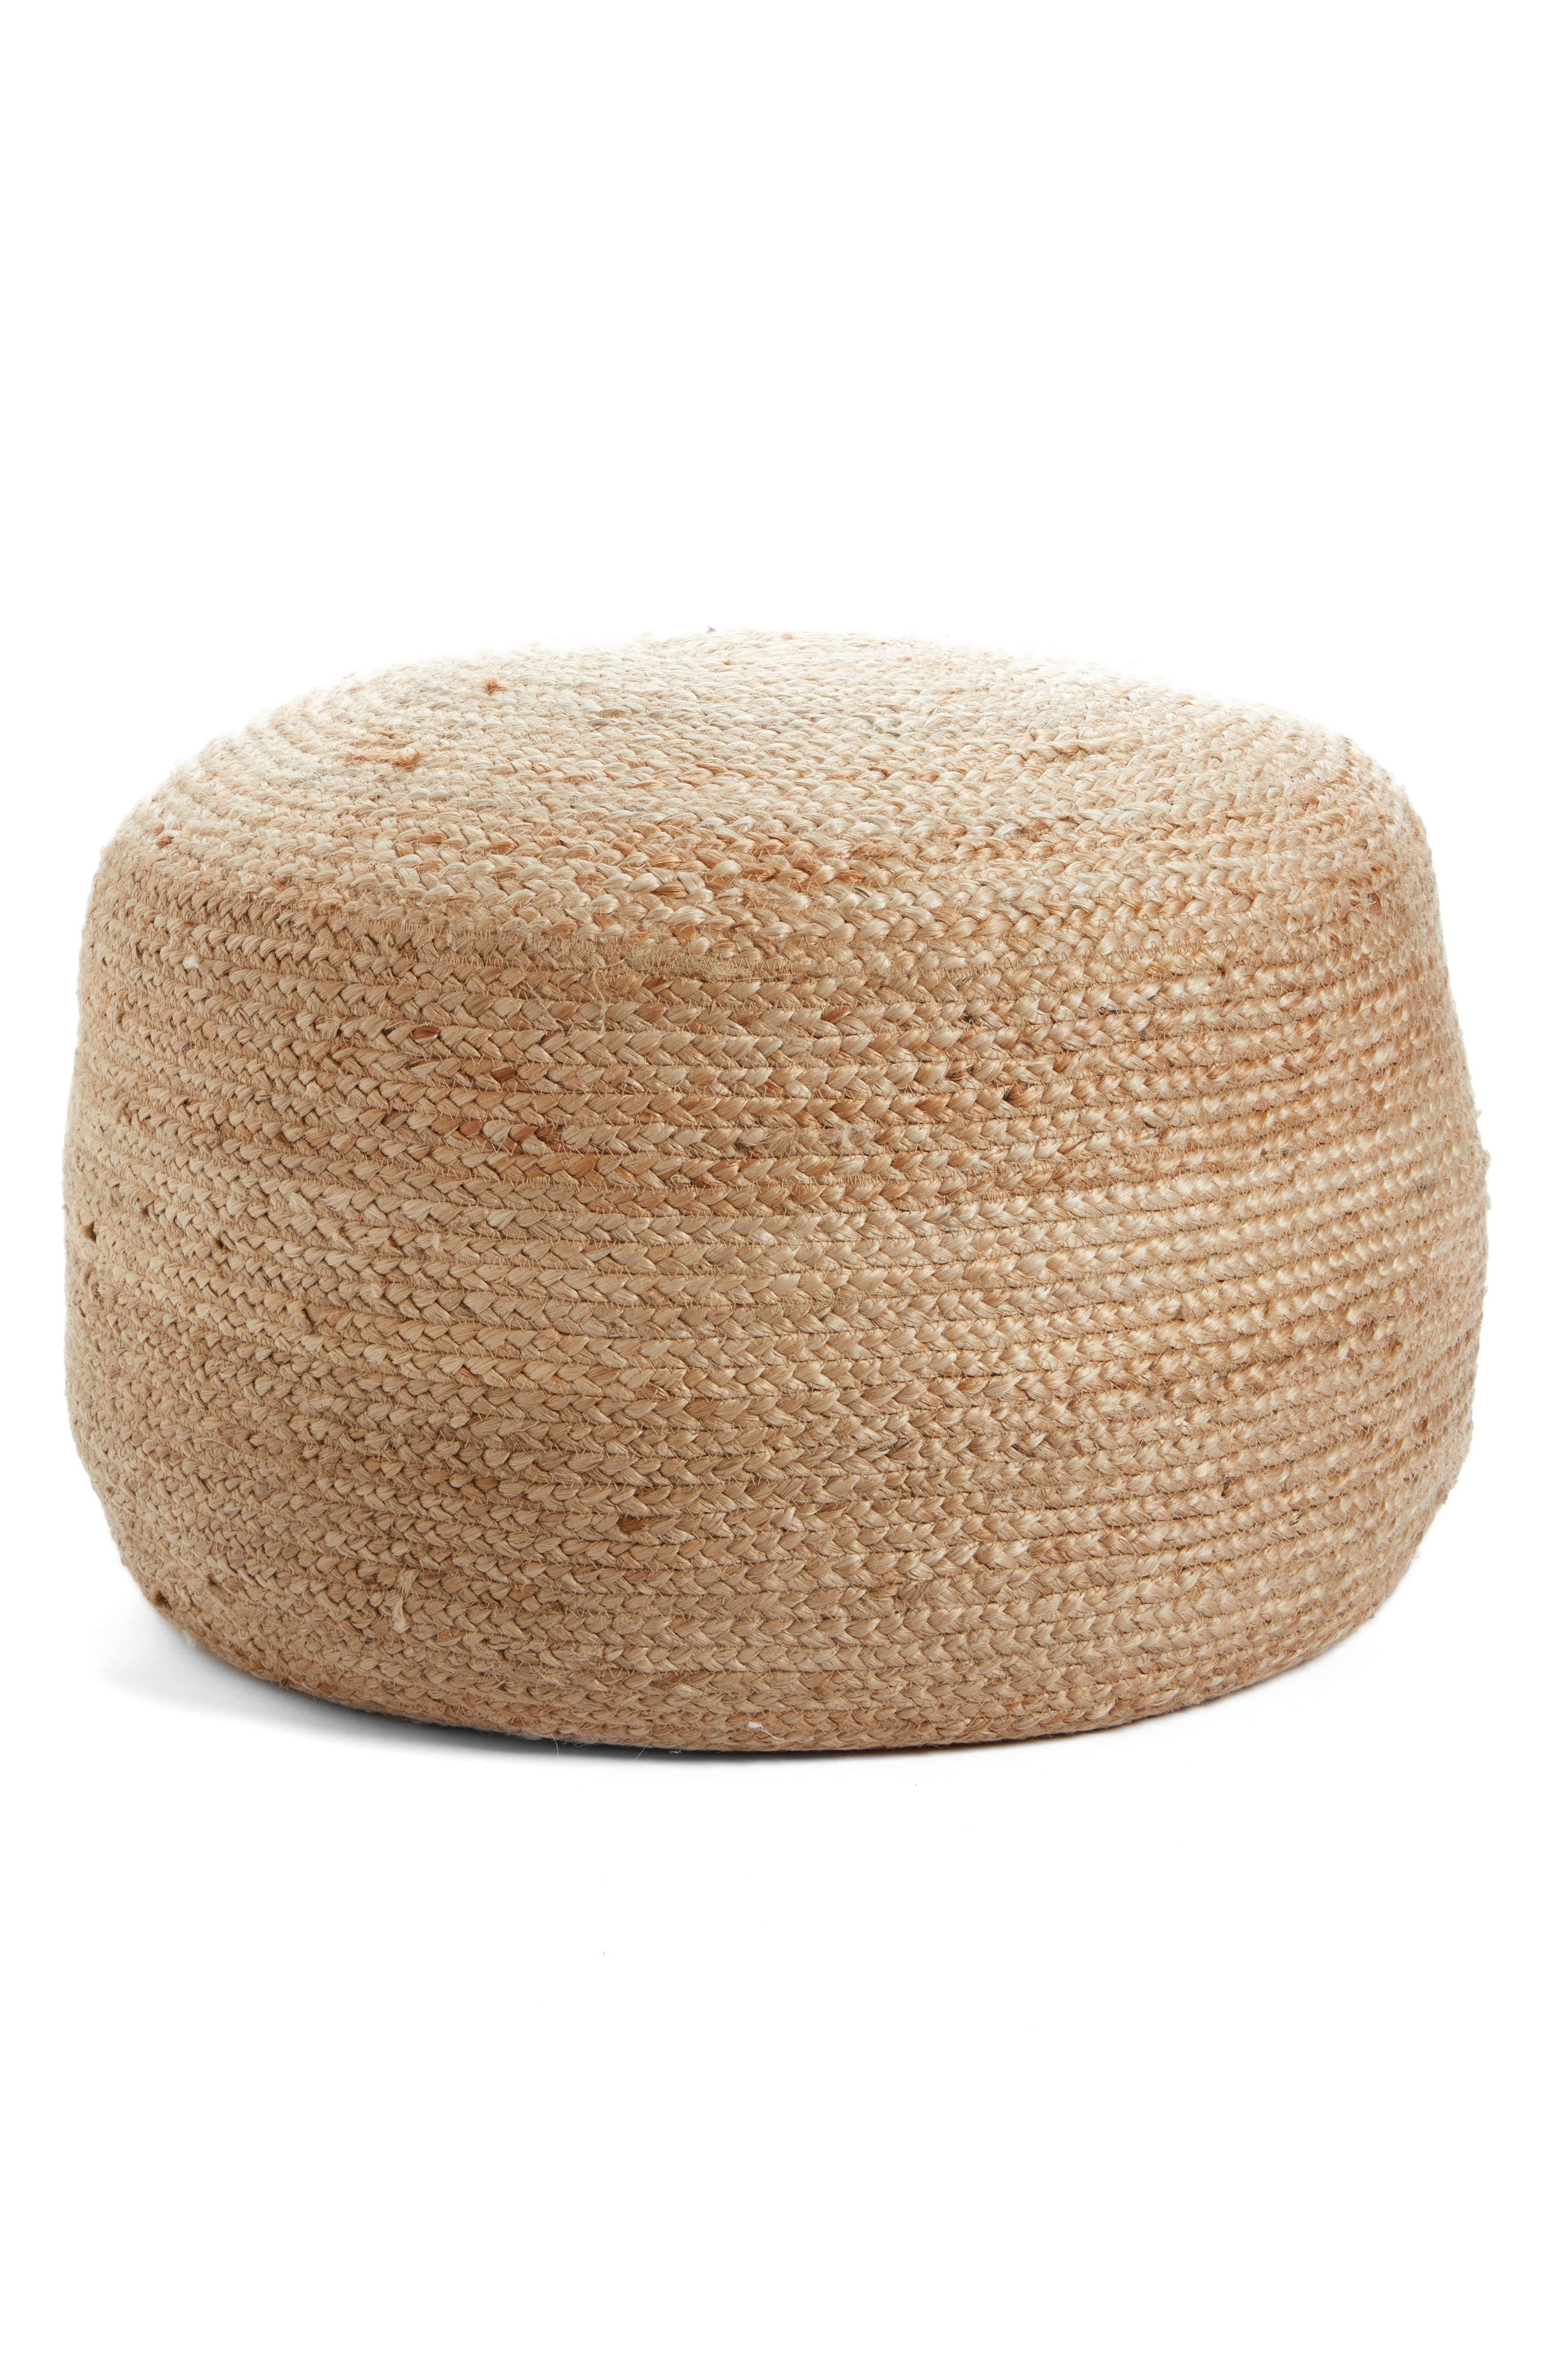 Indoor/Outdoor Jute Pouf,                             Main thumbnail 1, color,                             Natural